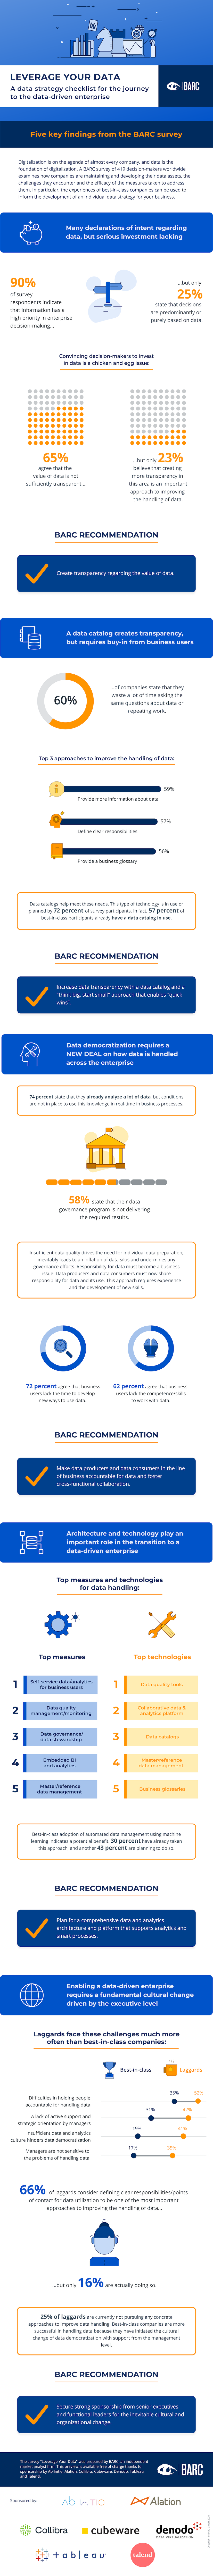 Infographic - Leverage Your Data